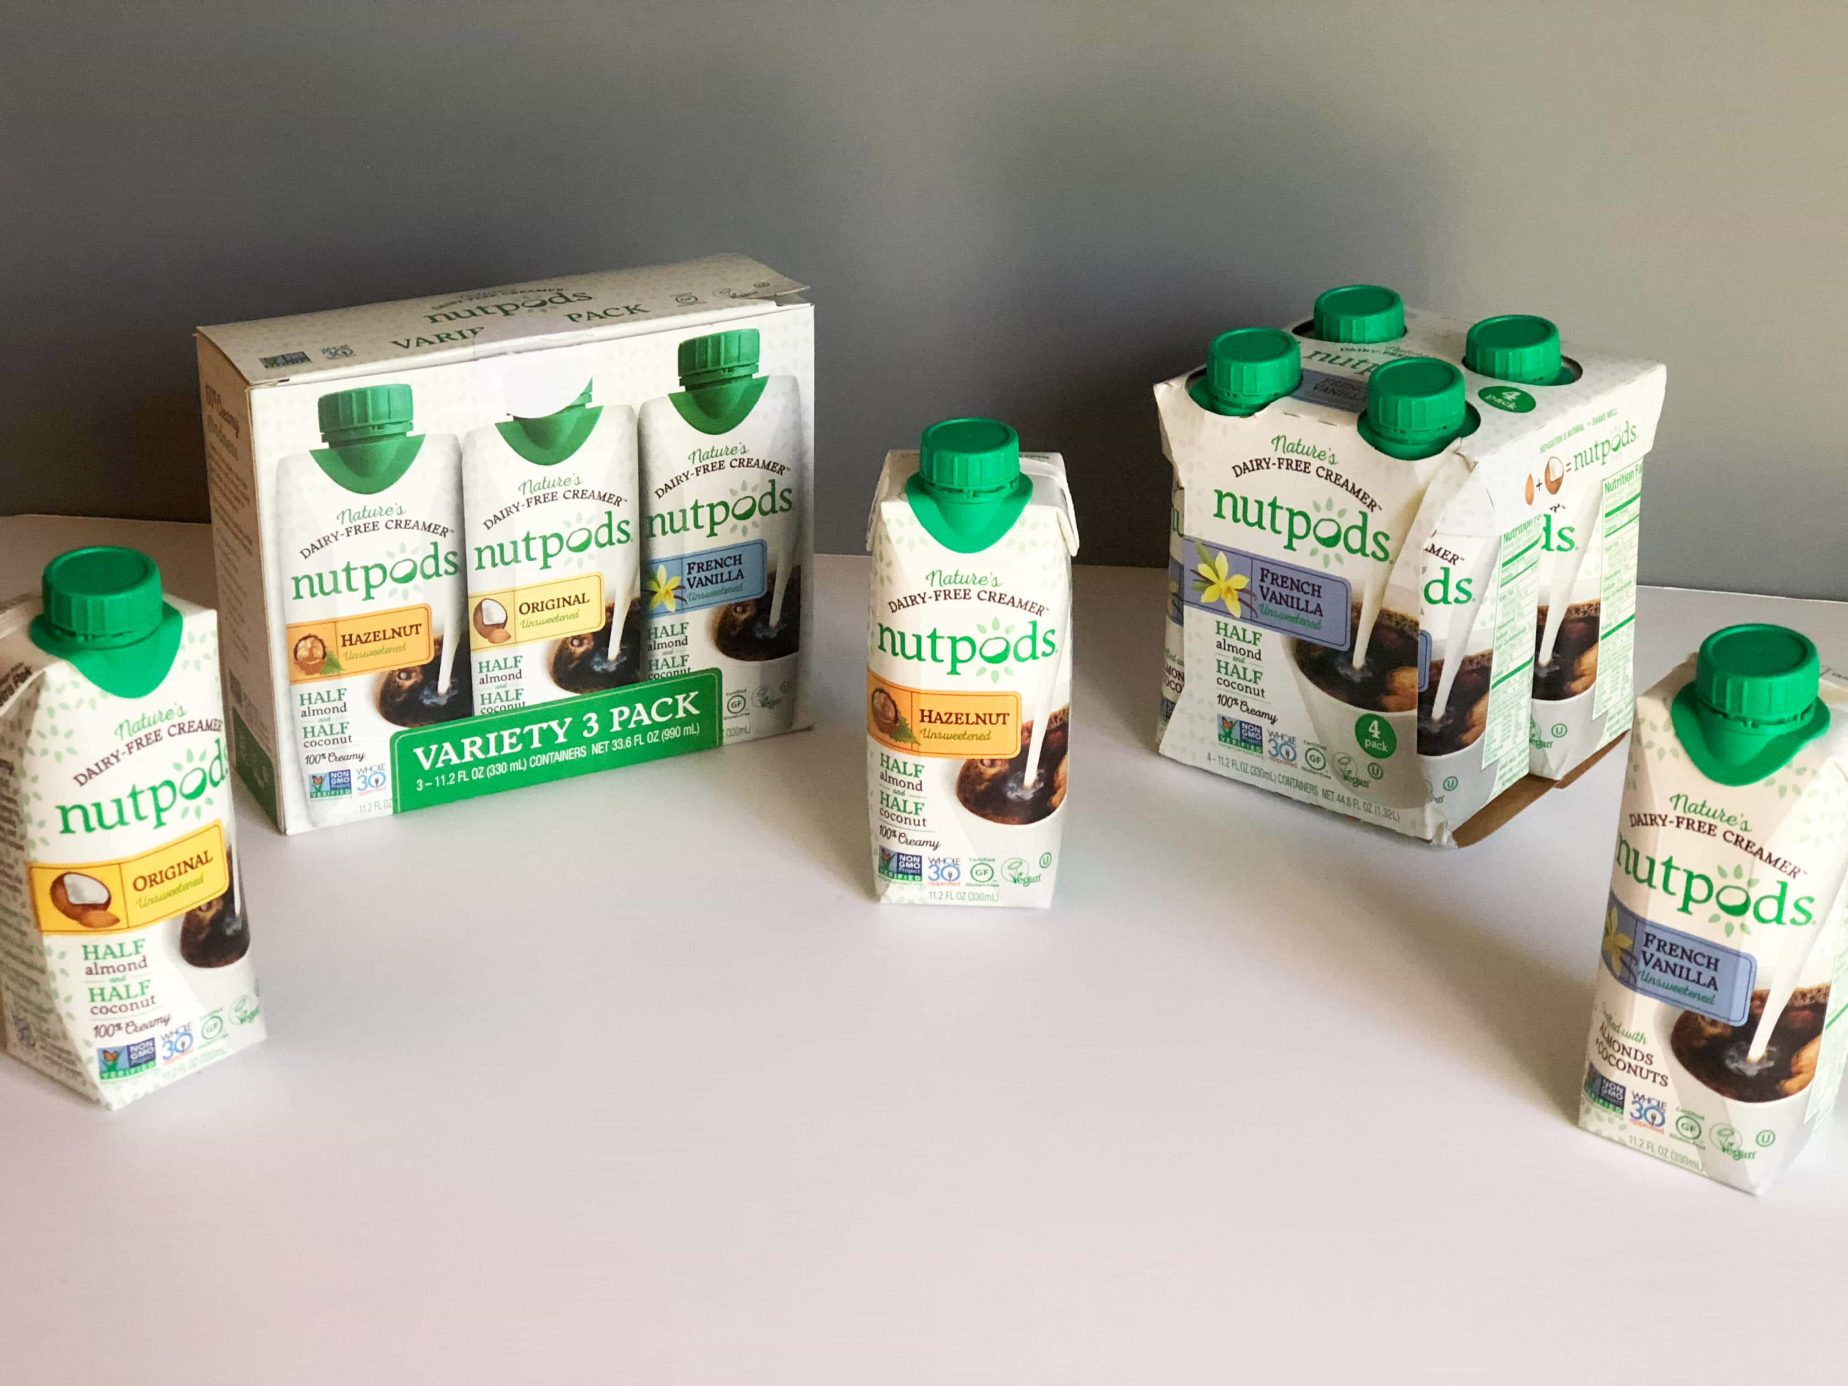 Nutpods - The Non-Dairy Creamer Alternative #saveeandsavory #review #nutpods #dairyfree #vegan #whole30 #kickstarter #variety